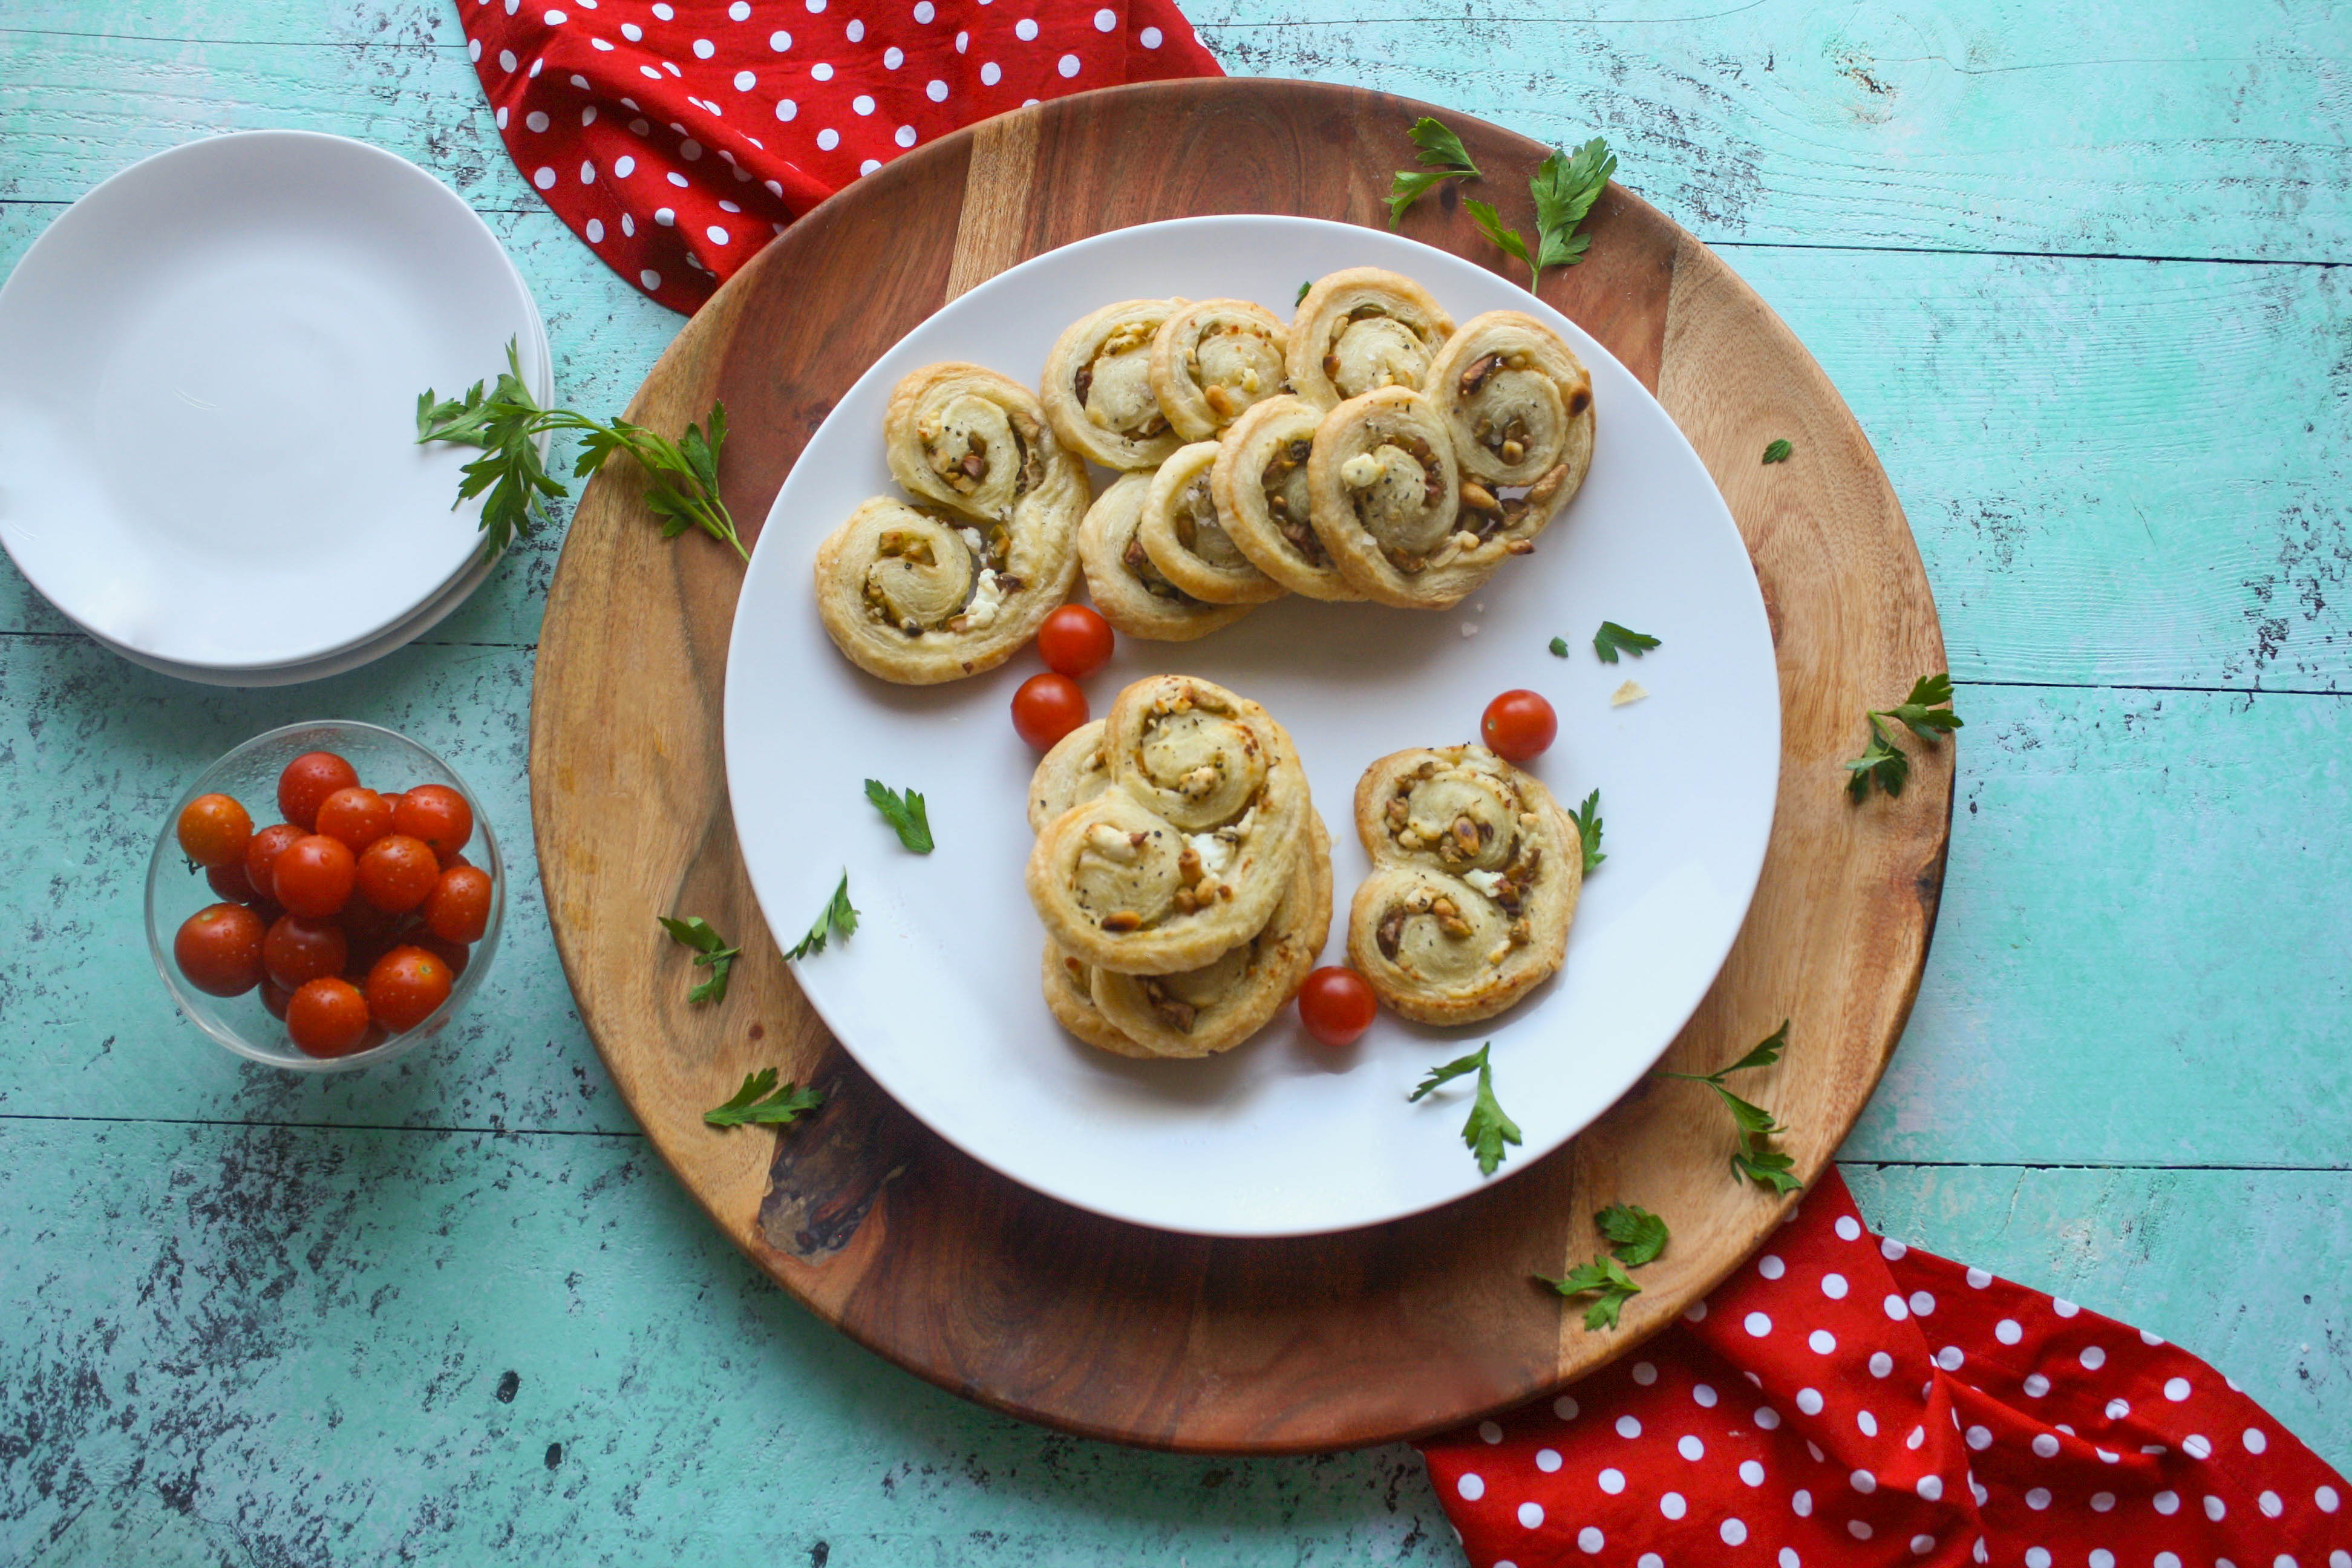 Savory Olive and Goat Cheese Palmiers are a fun snack to share. They're so easy to make, too!